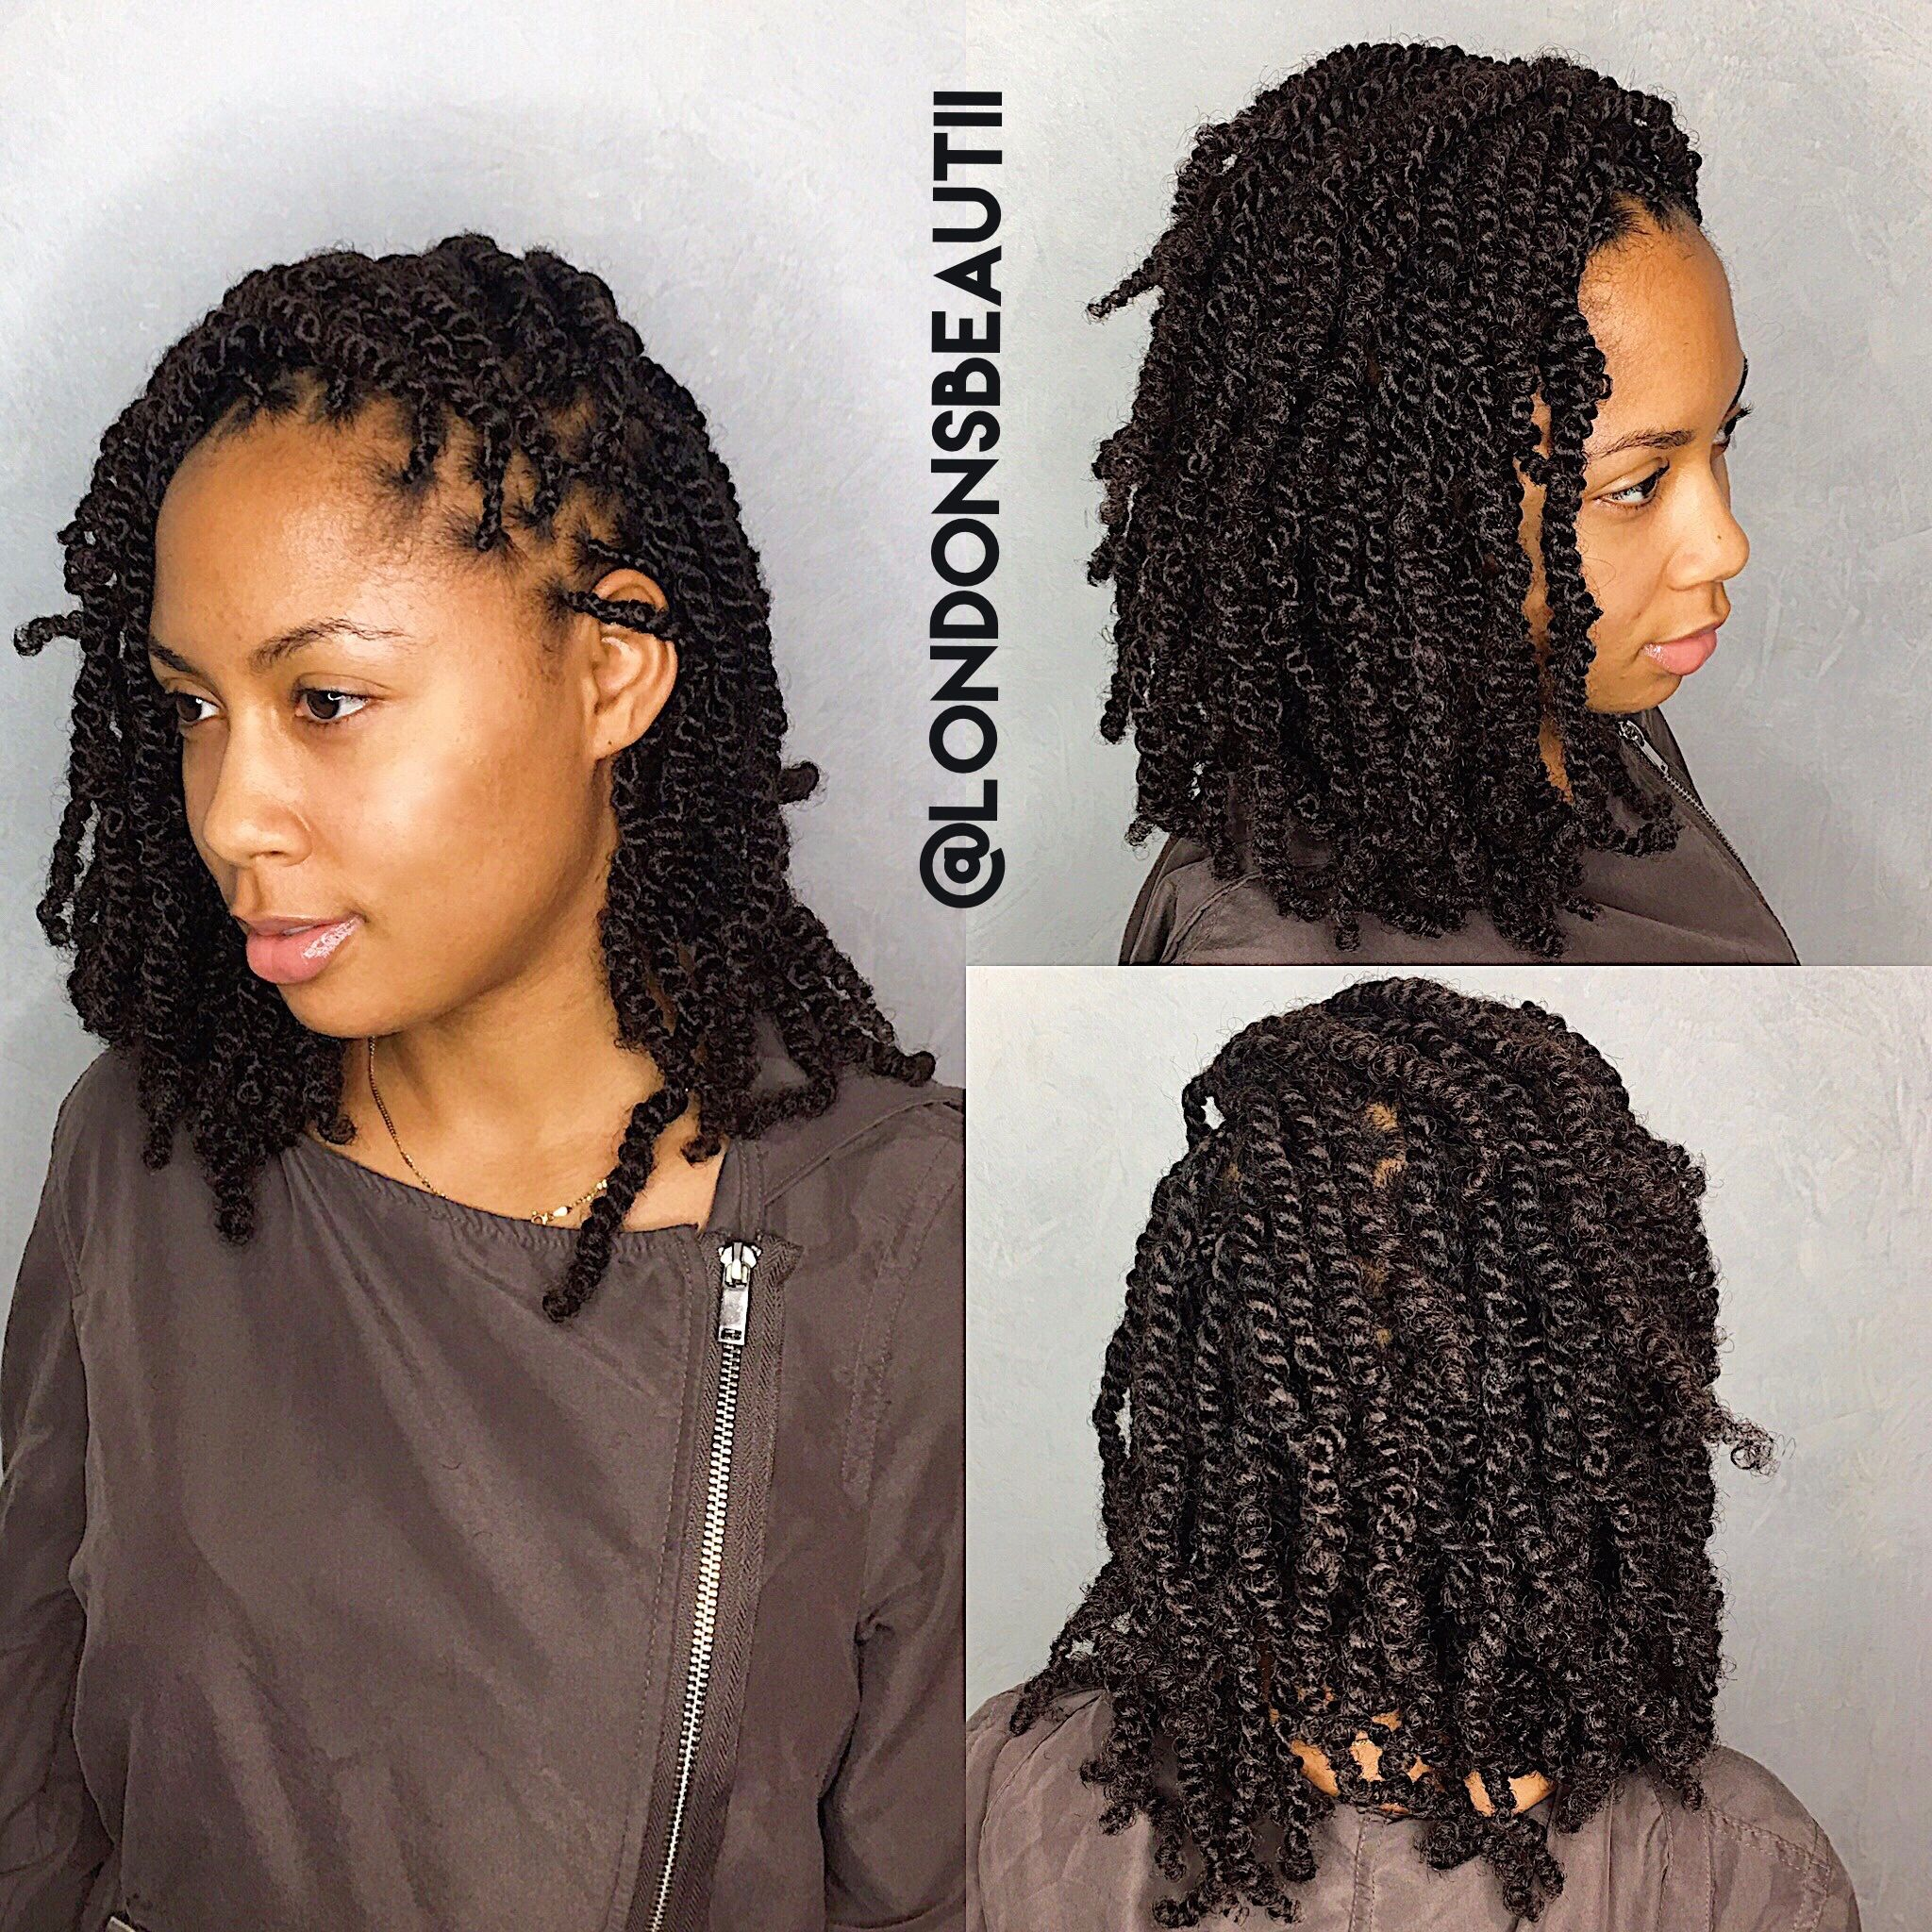 Twisties Hairstyles Stunning Spring Twist Donelondon's Beautii In Bowie Marylandwww